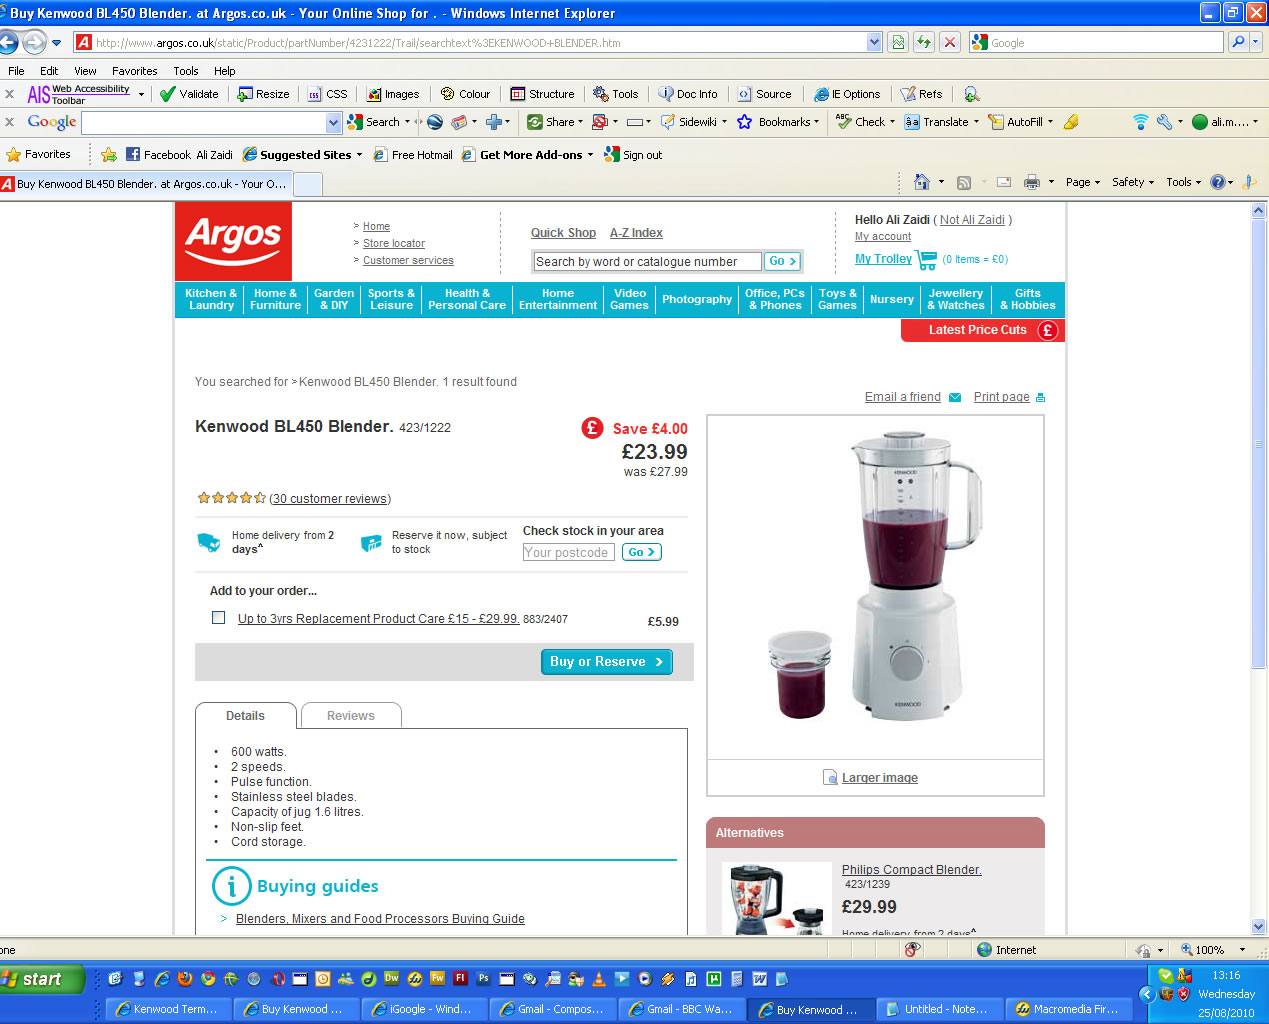 false advertising on the argos website of the kenwood bl450 false advertising on the argos website of the kenwood bl450 blender shown mill